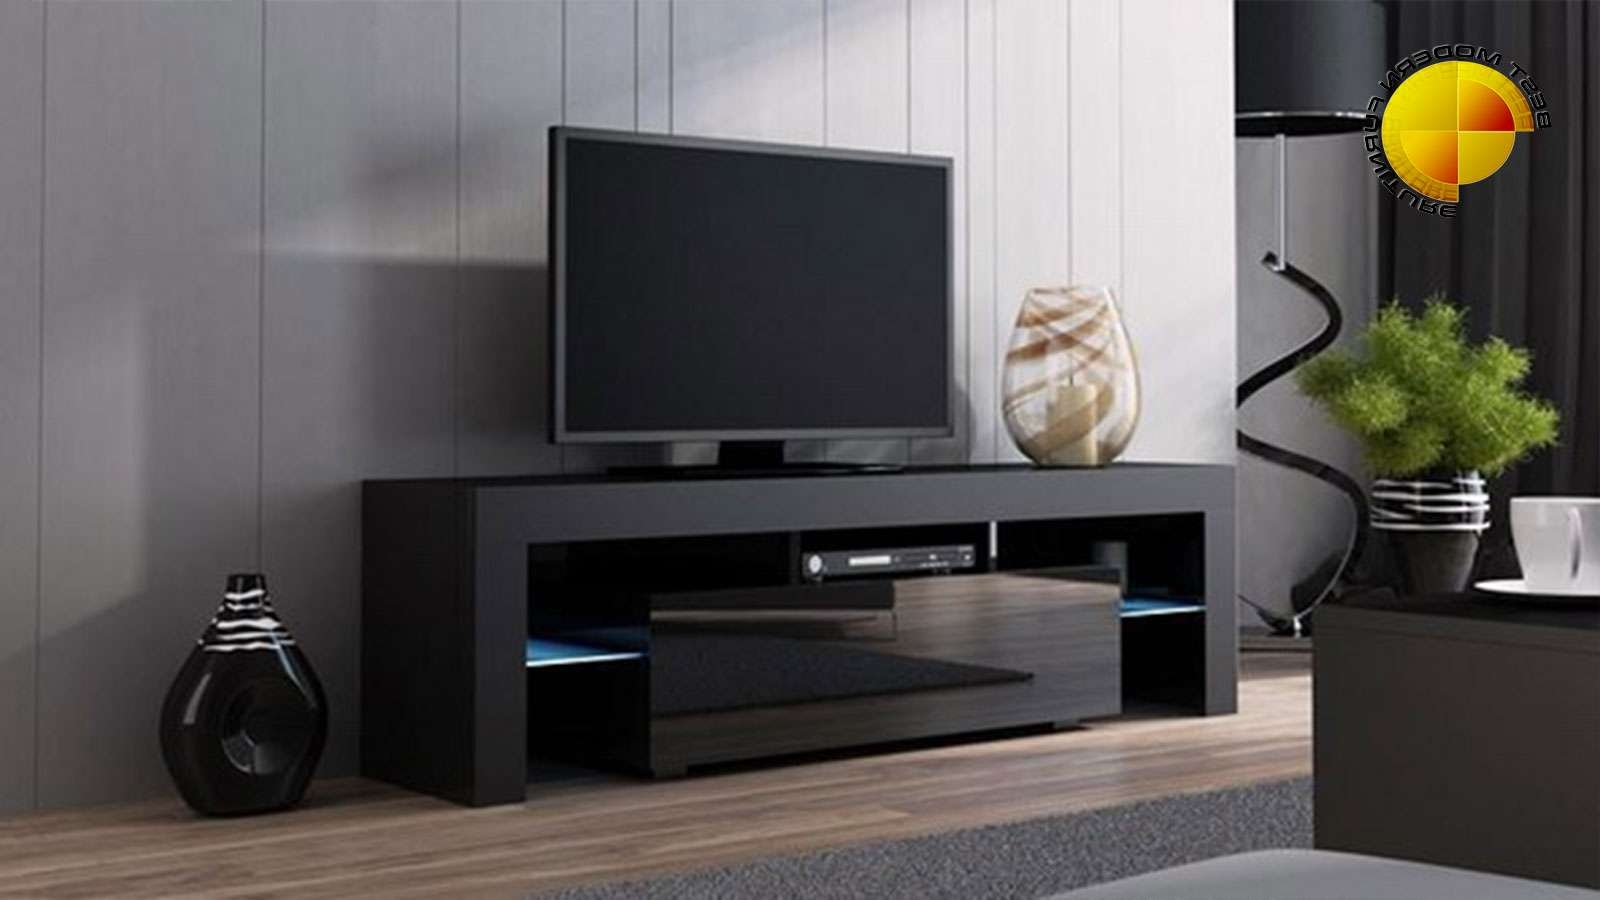 Modern Tv Stand 160cm High Gloss Cabinet Rgb Led Lights Black Unit Inside Tv Cabinets Gloss White (View 16 of 20)